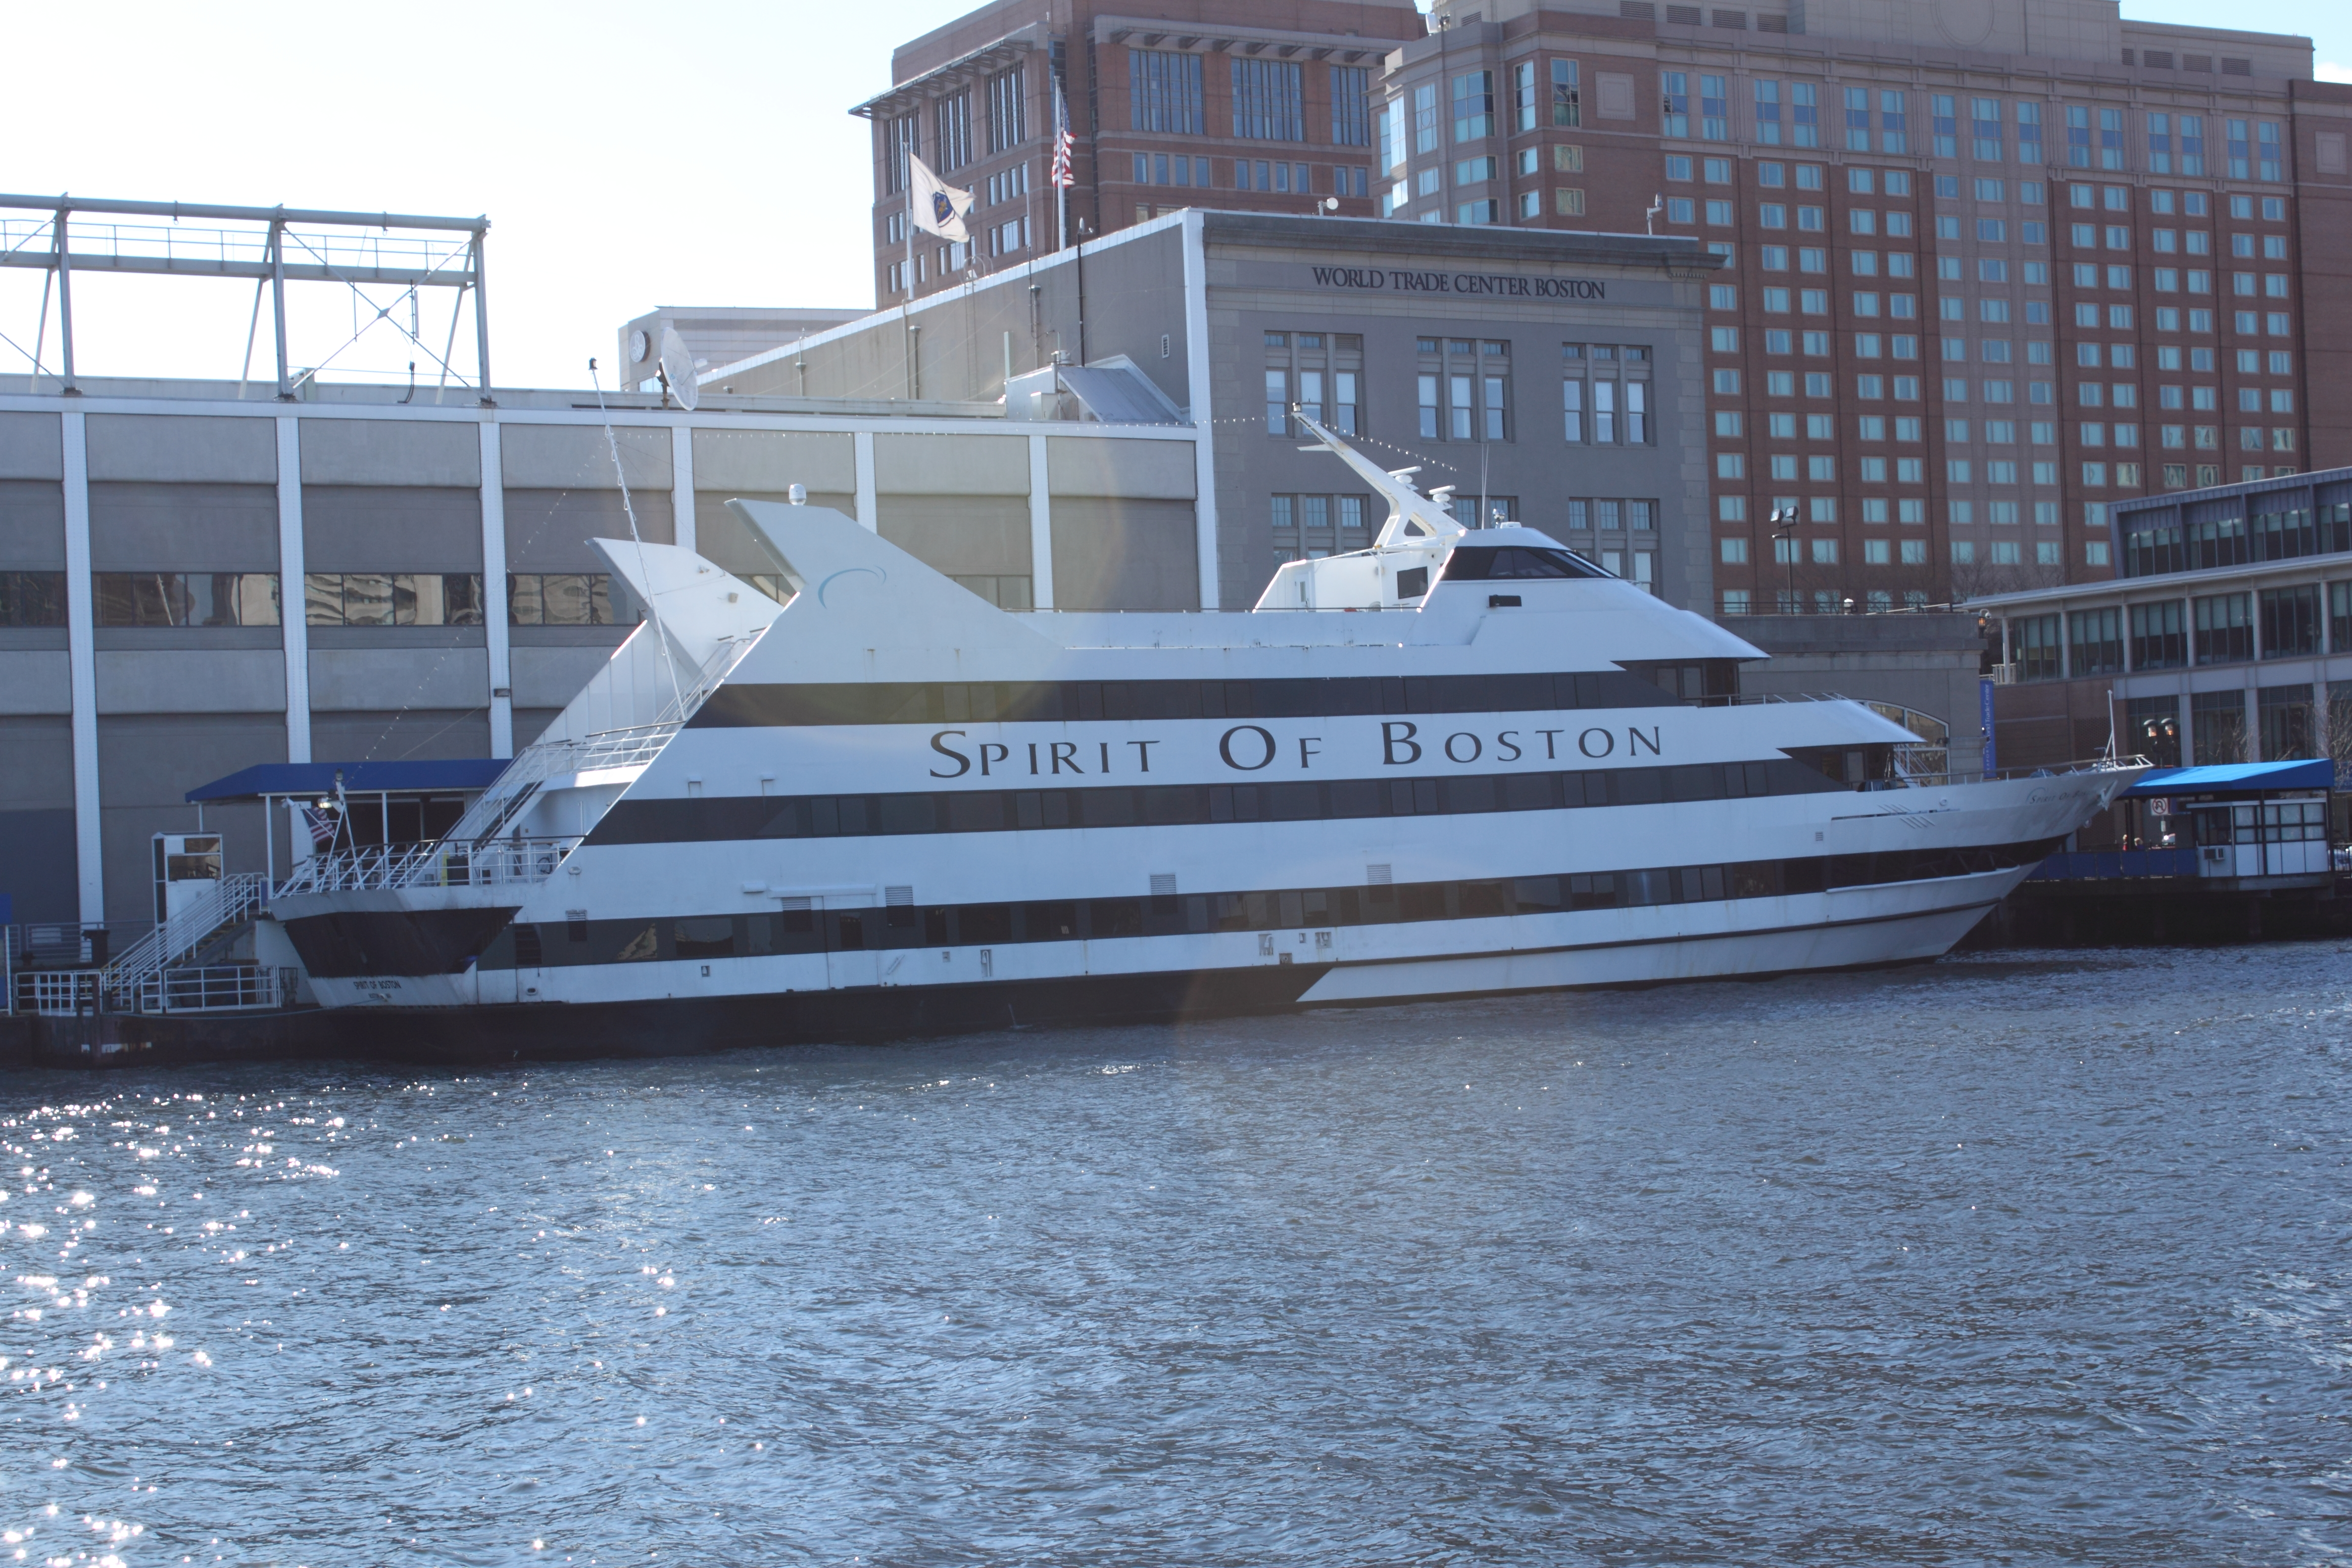 7th Annual All White Cruise AfriQue | Spirit Of Boston @ Spirit of Boston,  Boston [26 May]